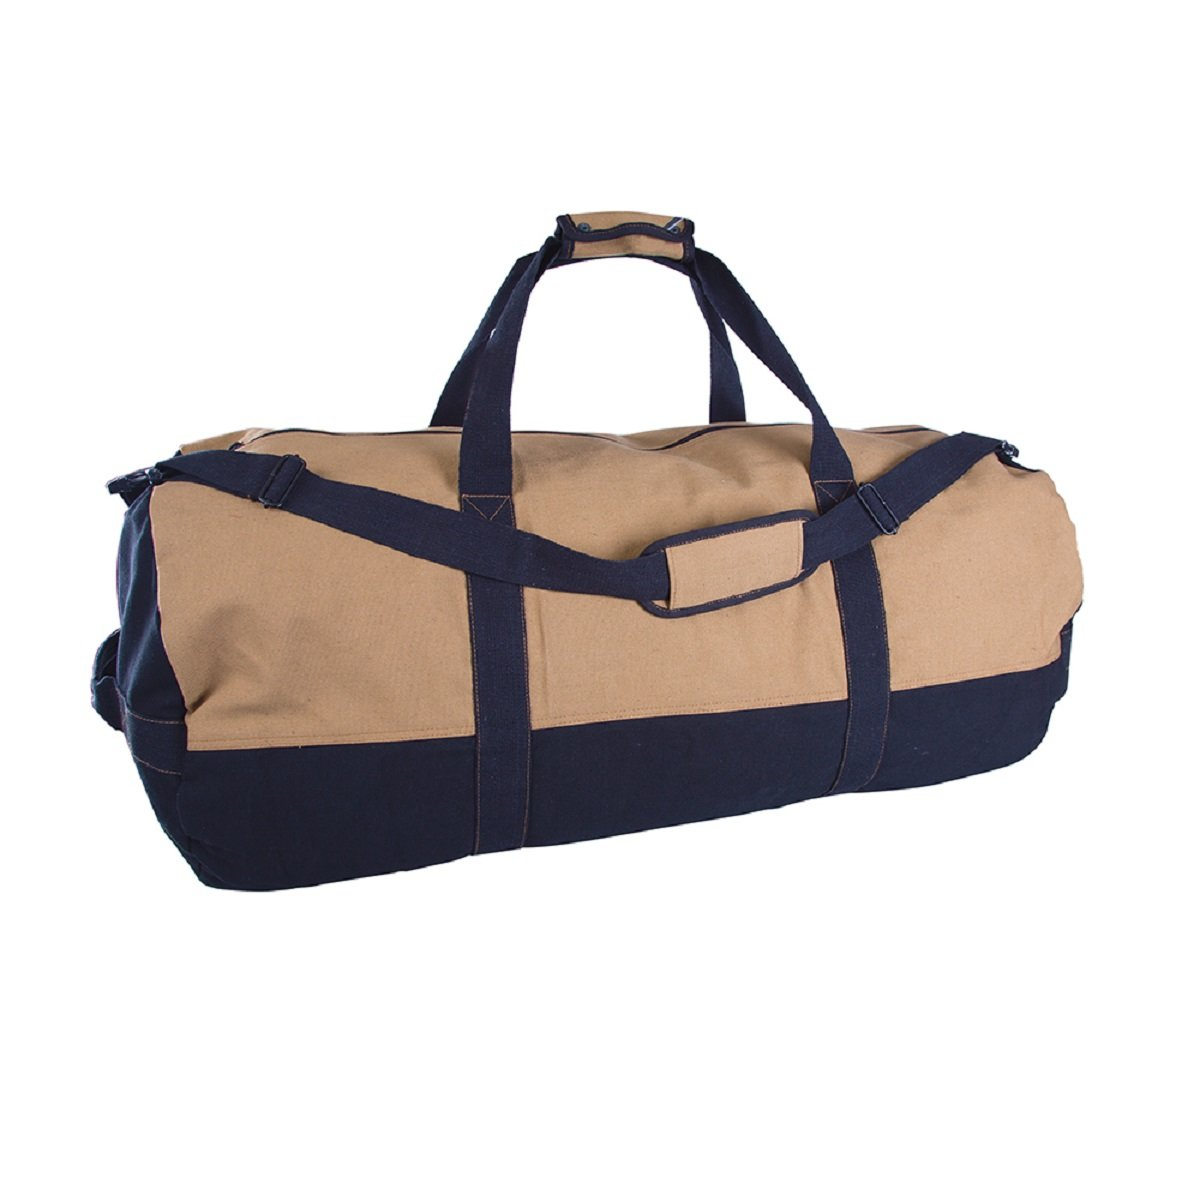 DUFFLE BAG WITH ZIPPER - 2 TONE - 18 IN X 36 IN, Case of 6 by DollarItemDirect